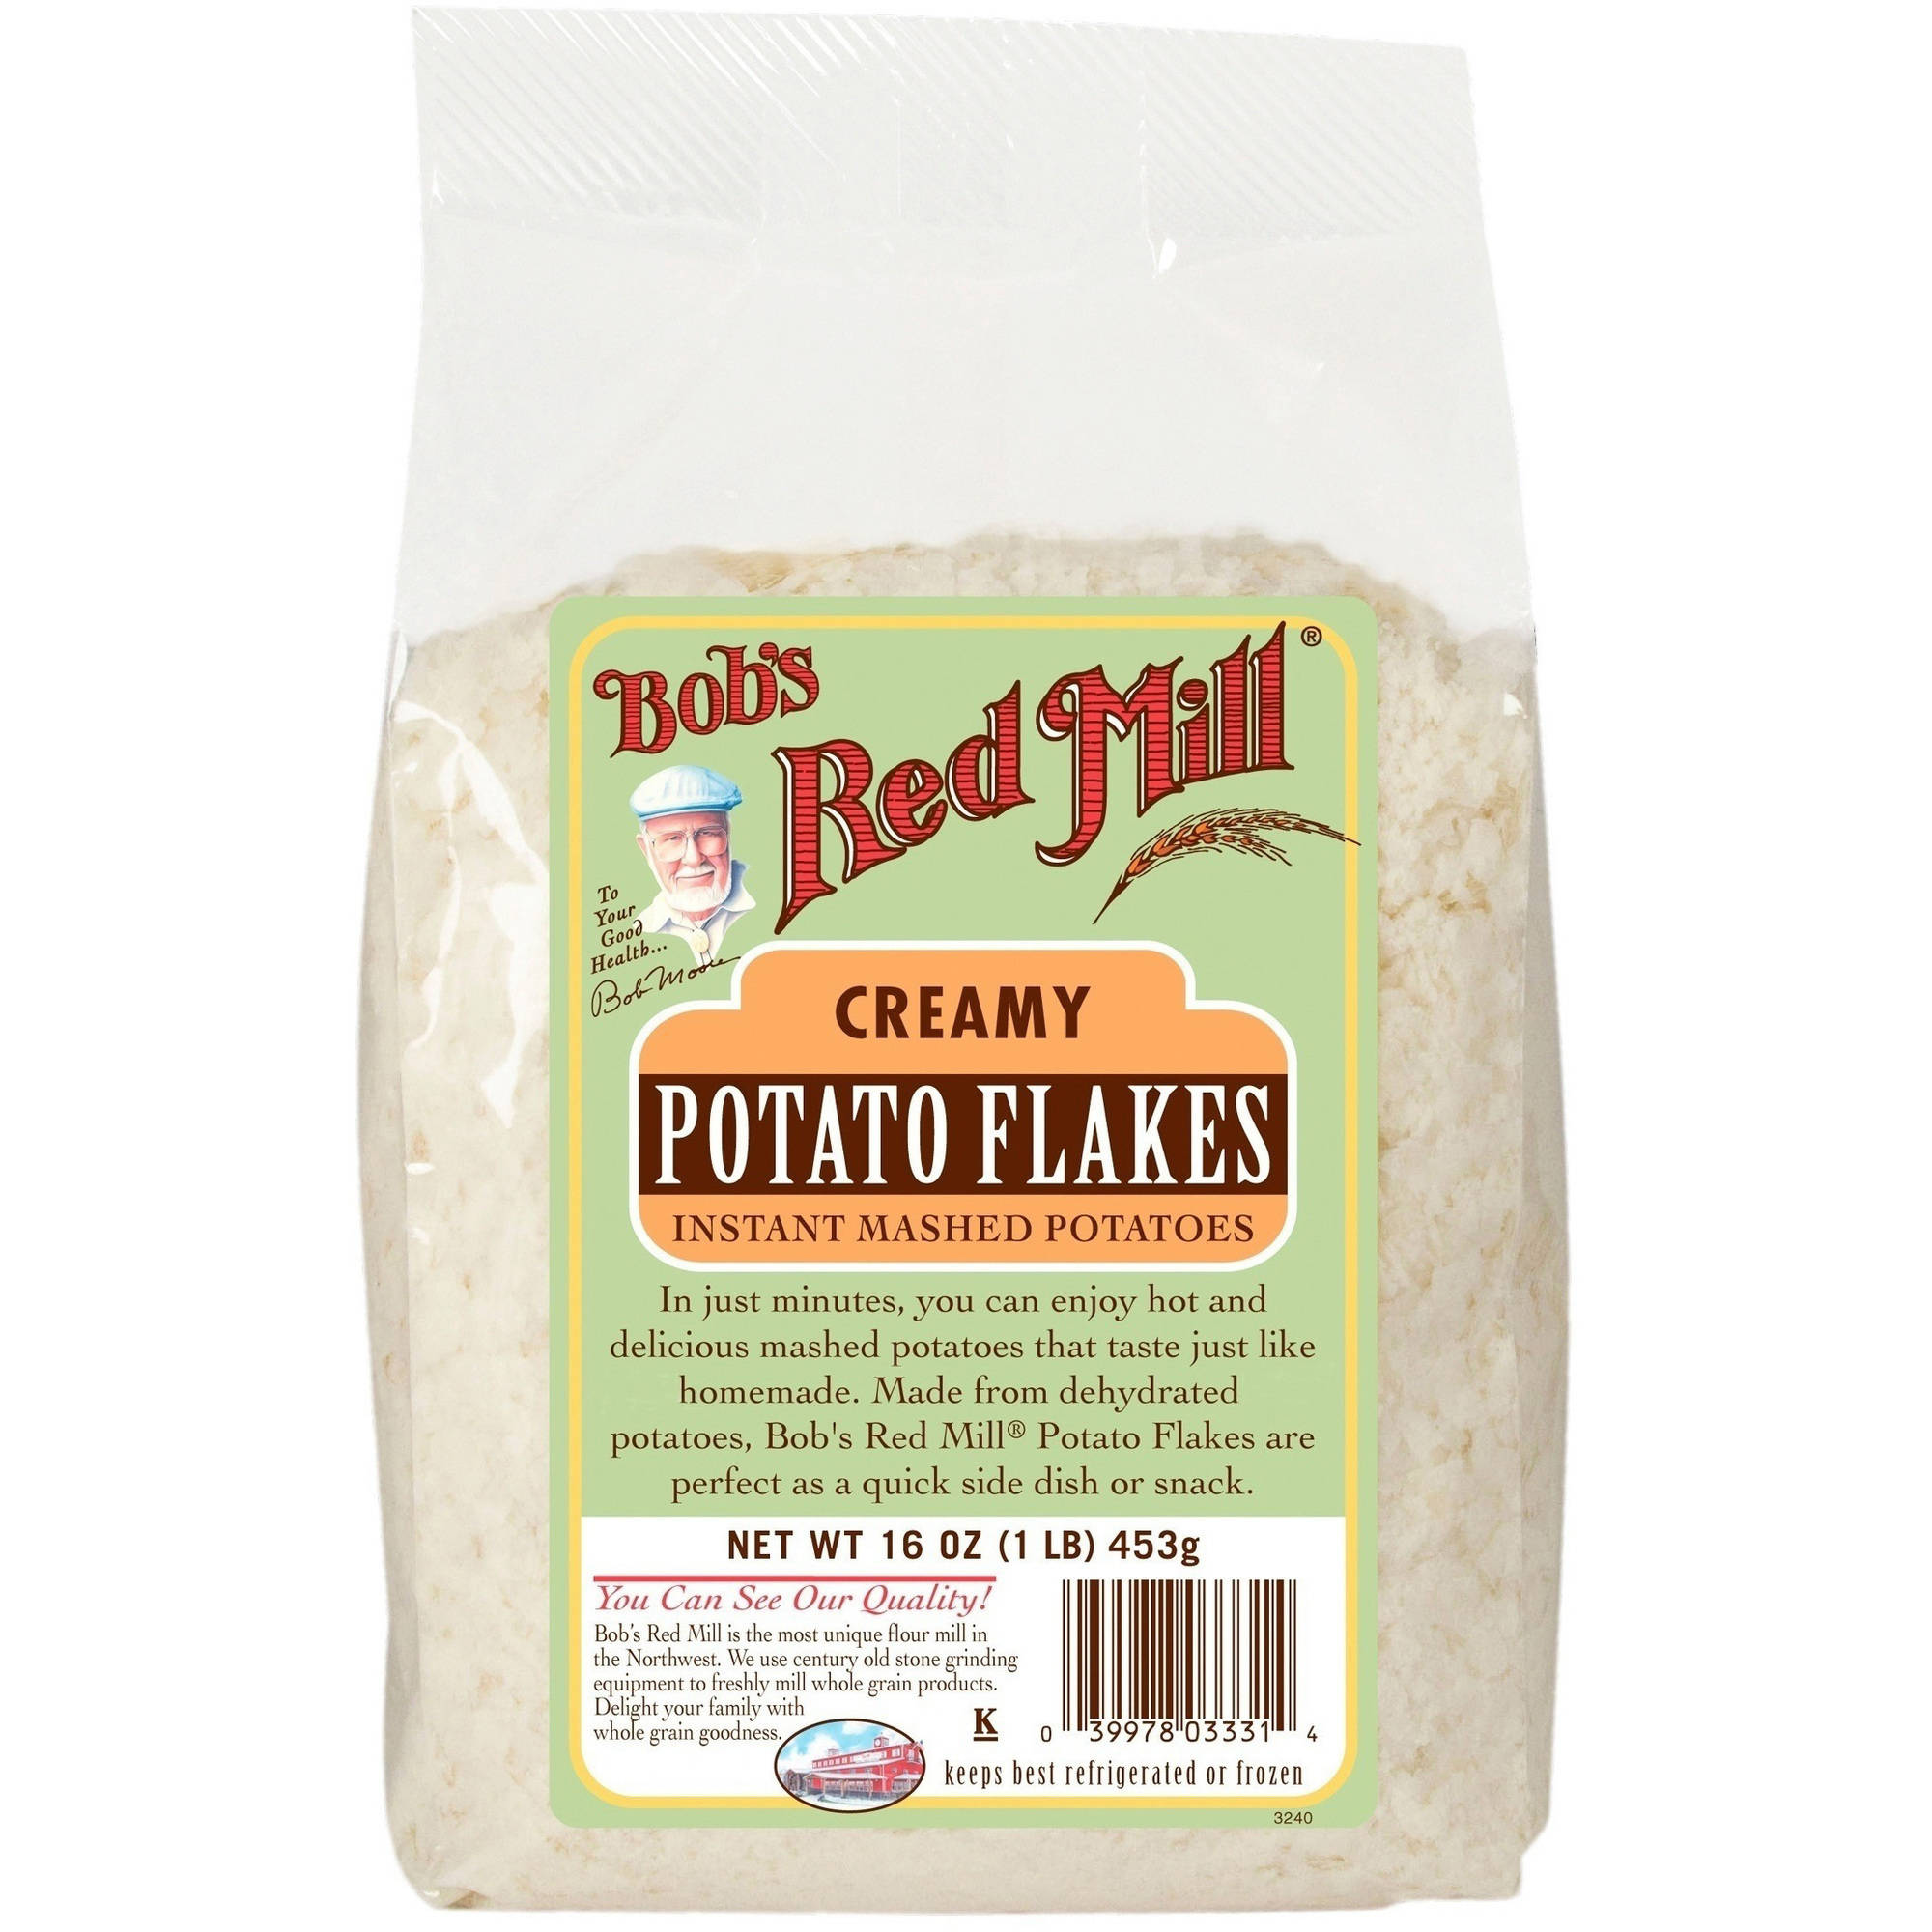 Bob's Red Mill Idaho Potato Flakes Instant Mashed Potatoes, 16 oz, (Pack of 4)